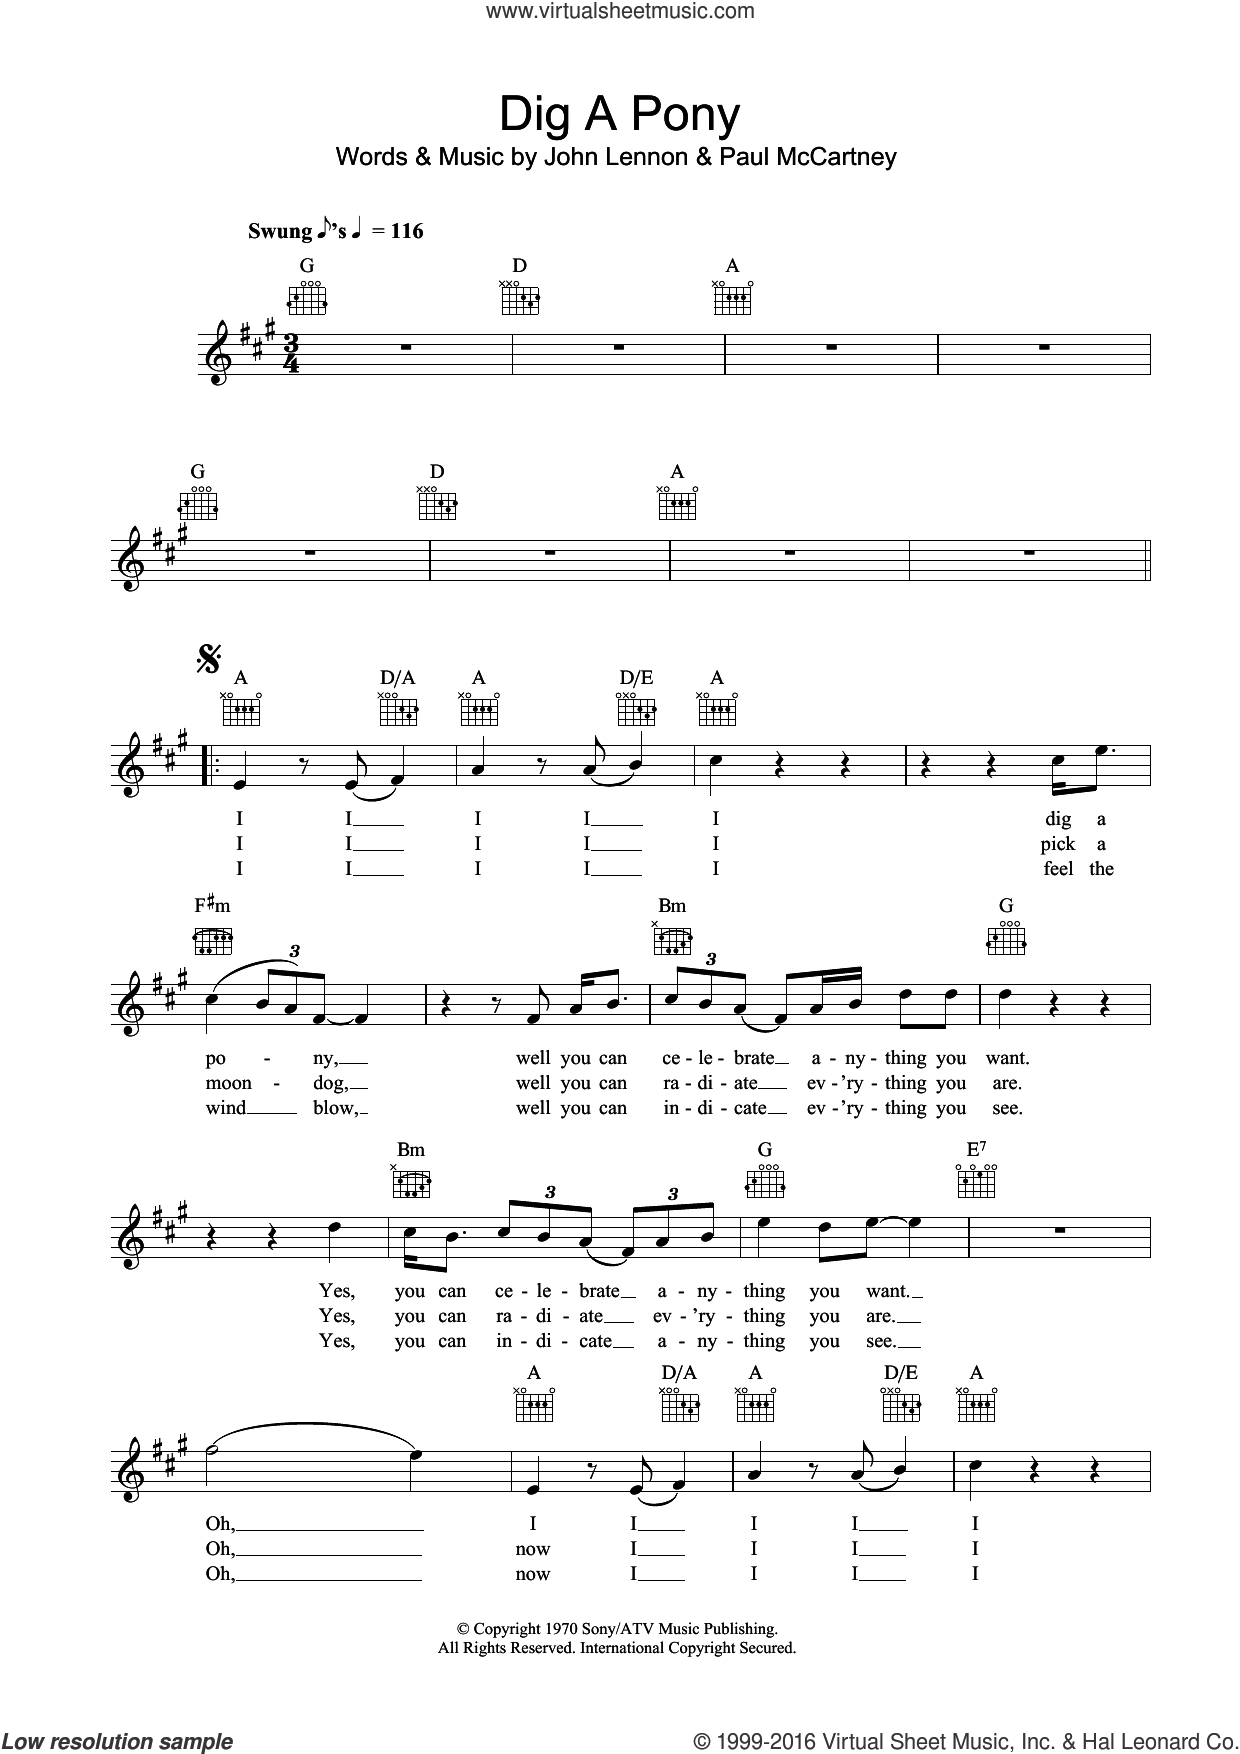 Dig A Pony sheet music for voice and other instruments (fake book) by The Beatles, John Lennon and Paul McCartney, intermediate skill level